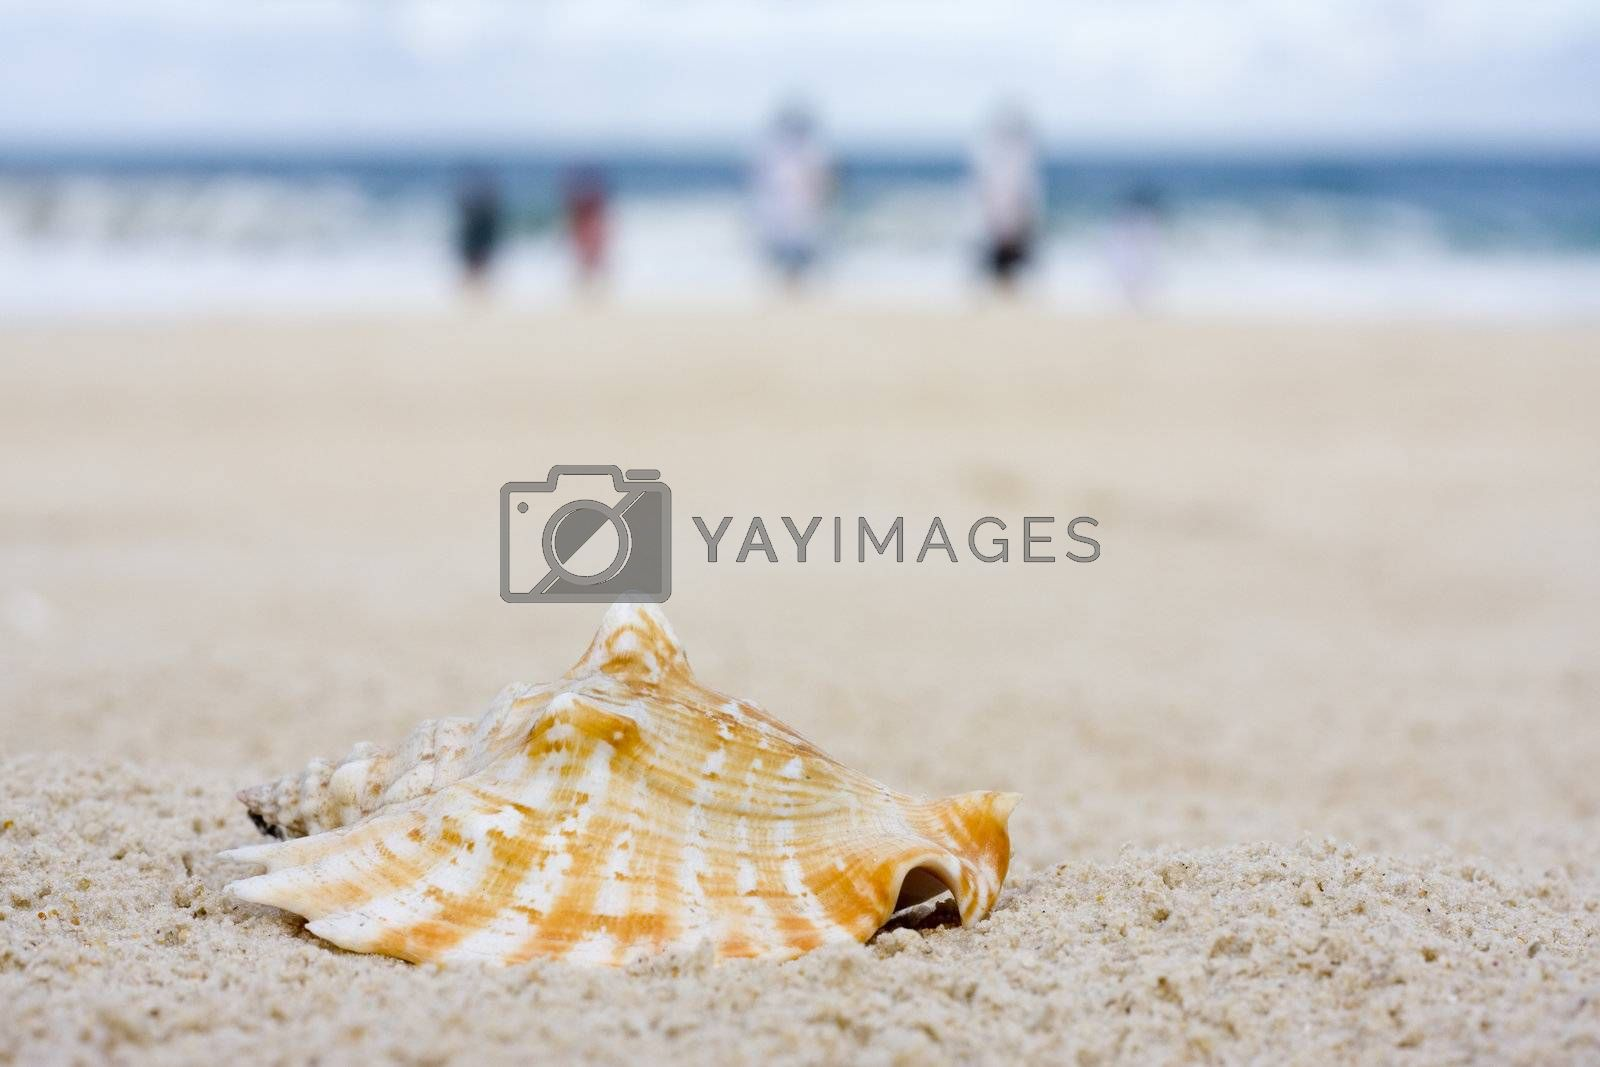 Shell on a beach with blurred people in the background